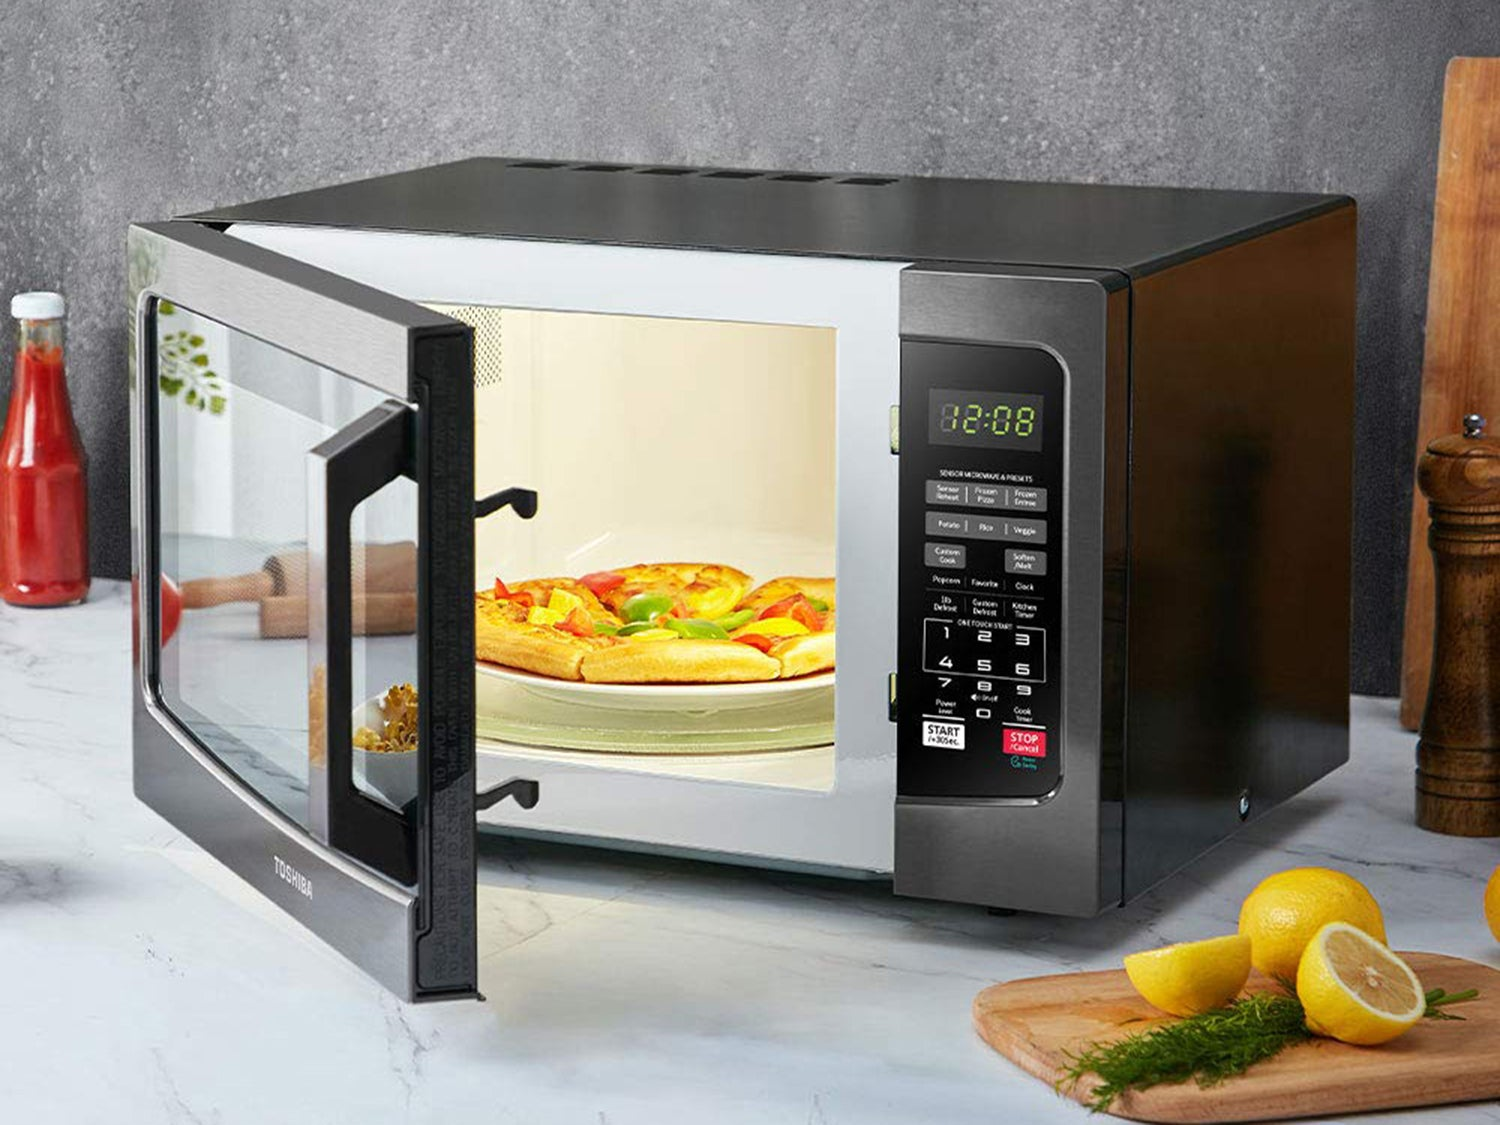 Exterior of microwave oven